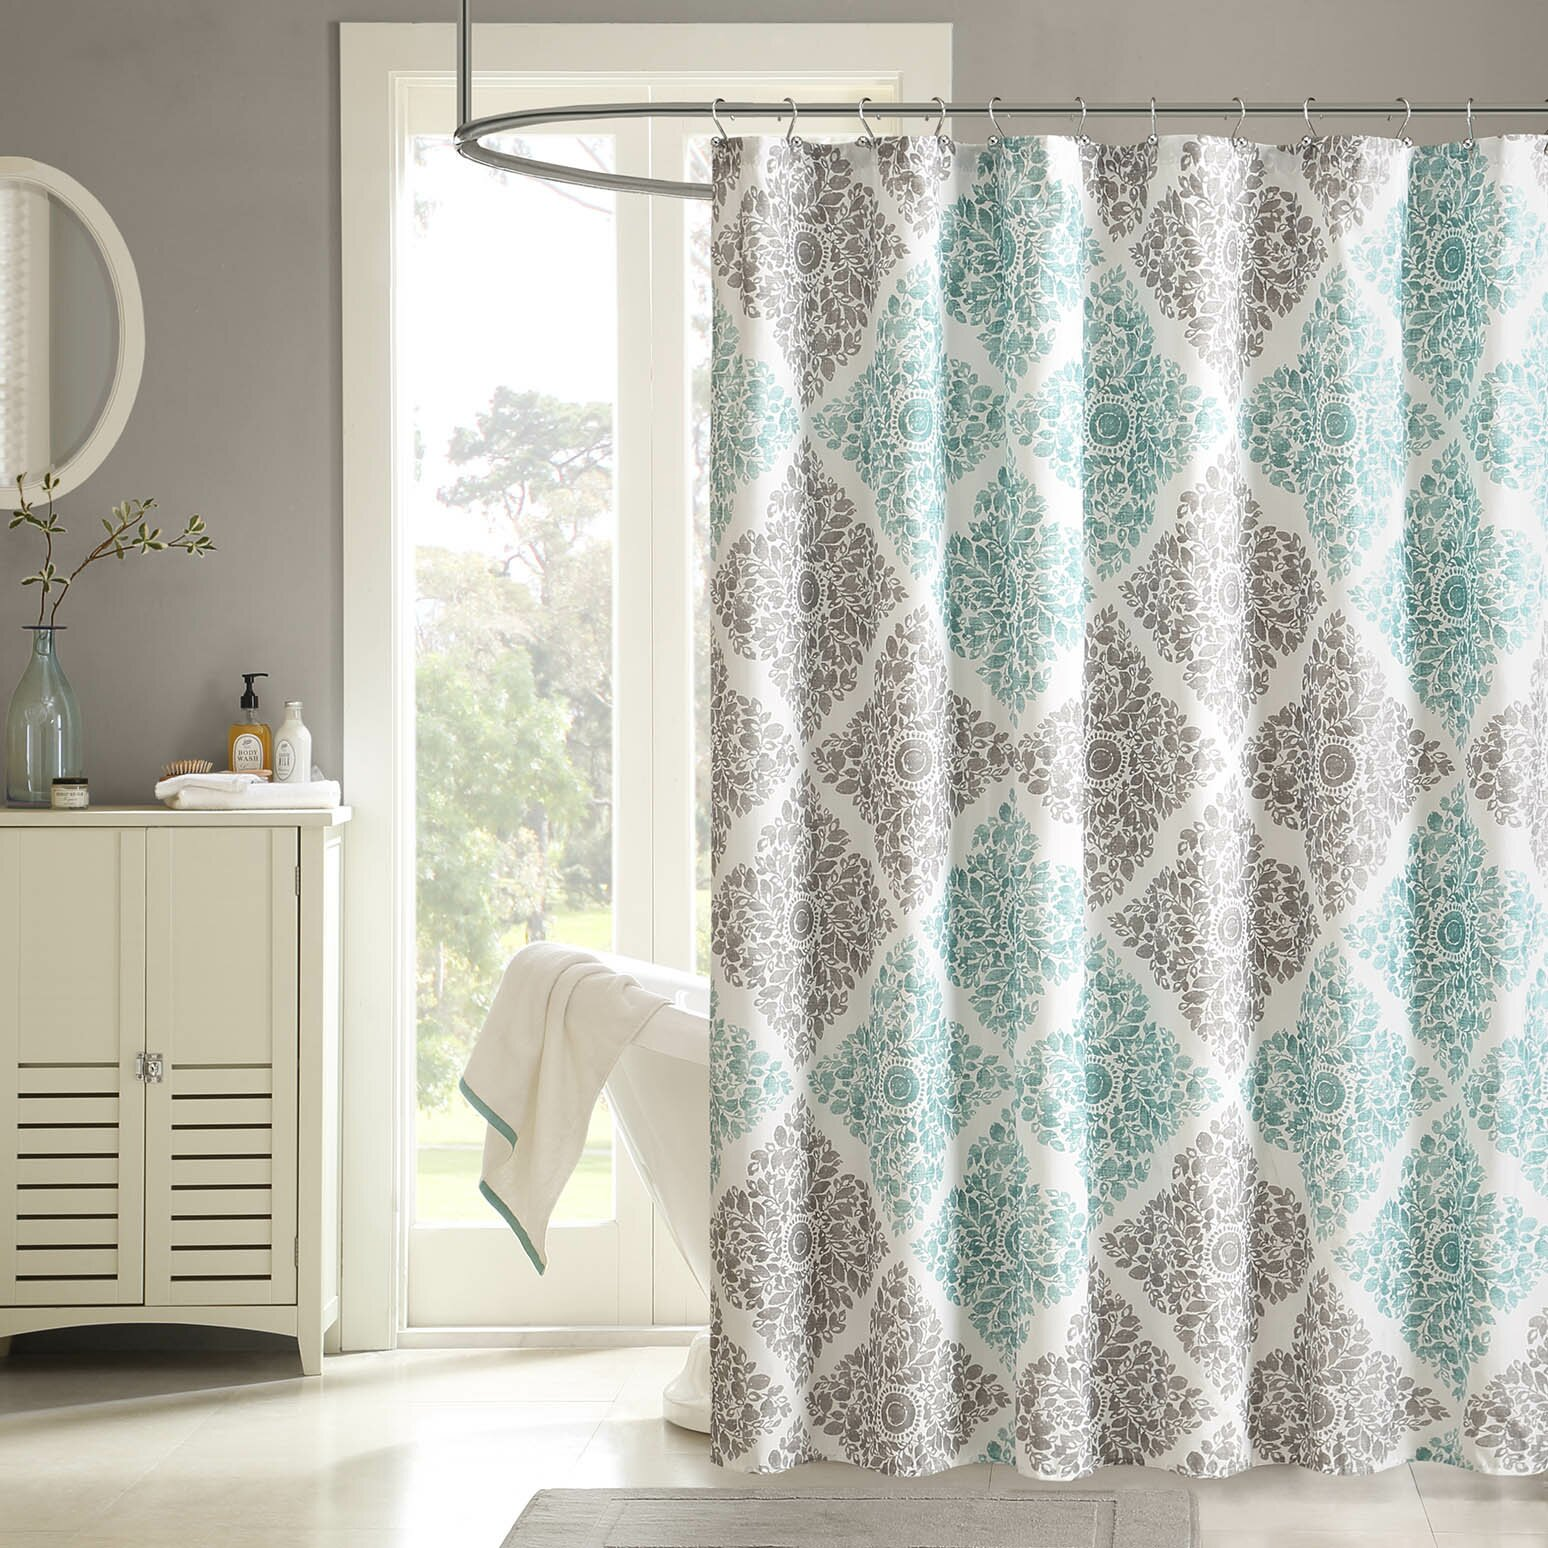 Chevron bathroom sets with shower curtain and rugs - Padang Sidempuan Shower Curtain